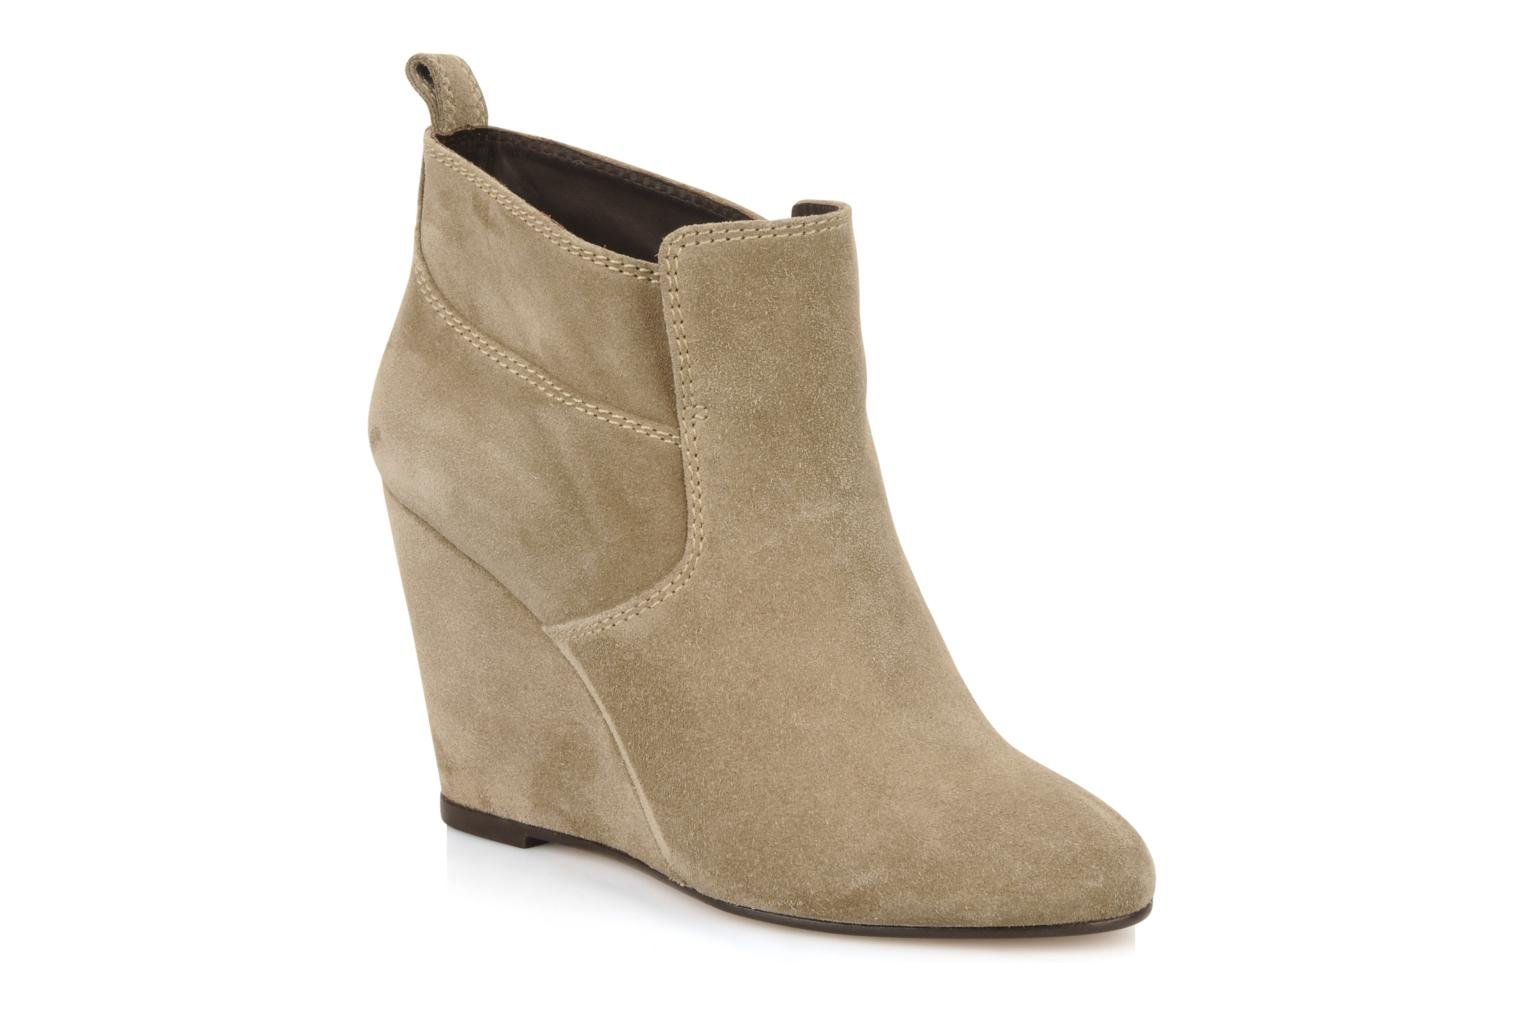 Wedge booty stitch suede